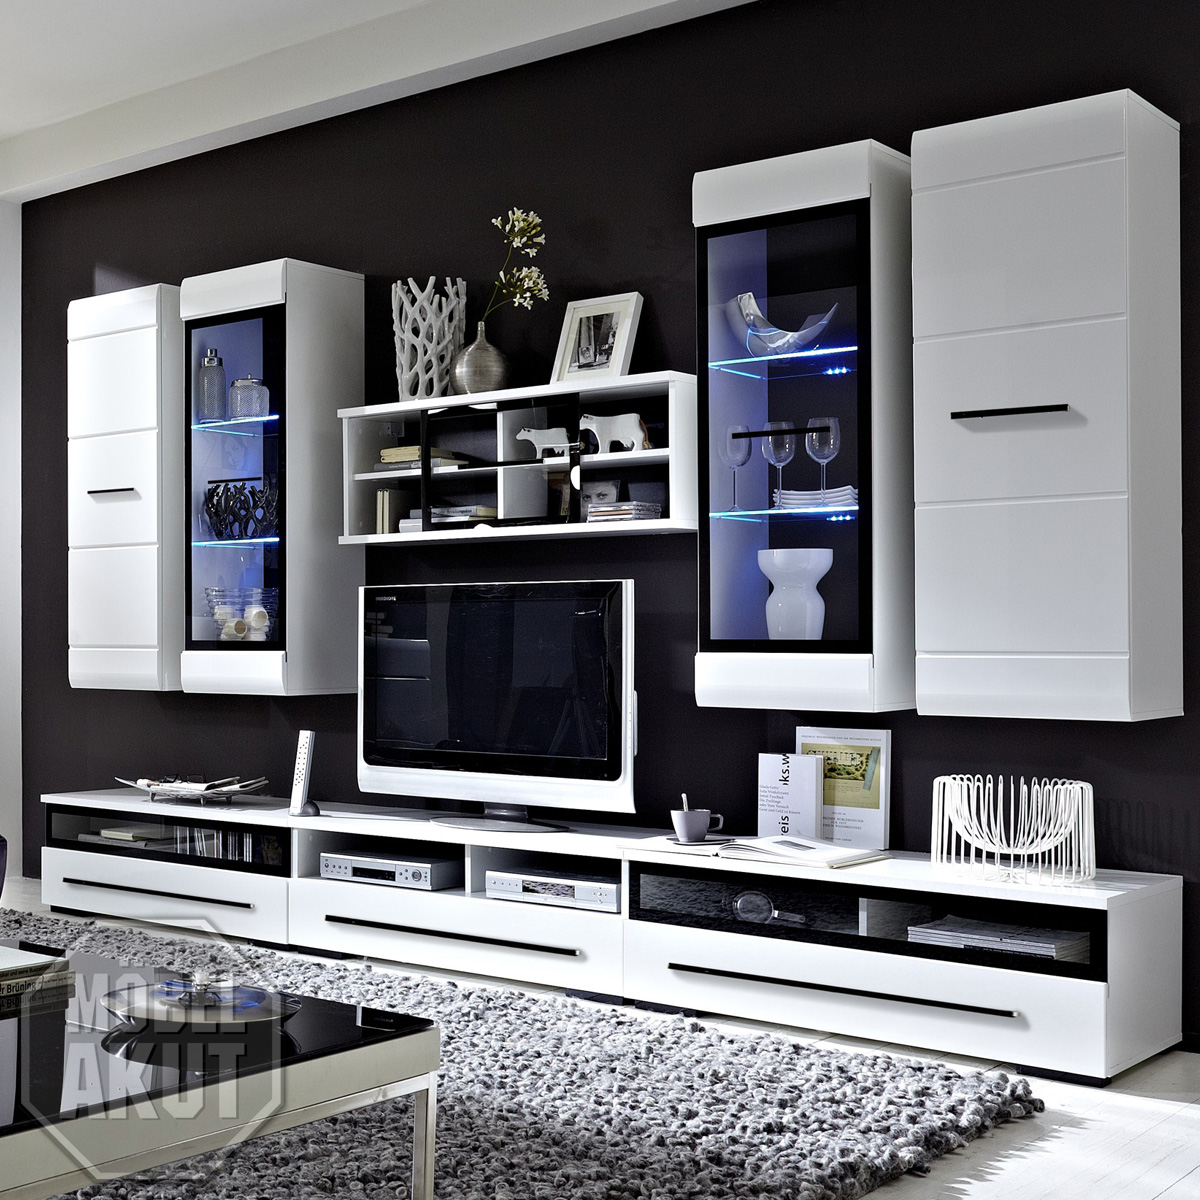 wohnwand accento in mdf wei hochglanz inkl led eur 466 00 picclick de. Black Bedroom Furniture Sets. Home Design Ideas